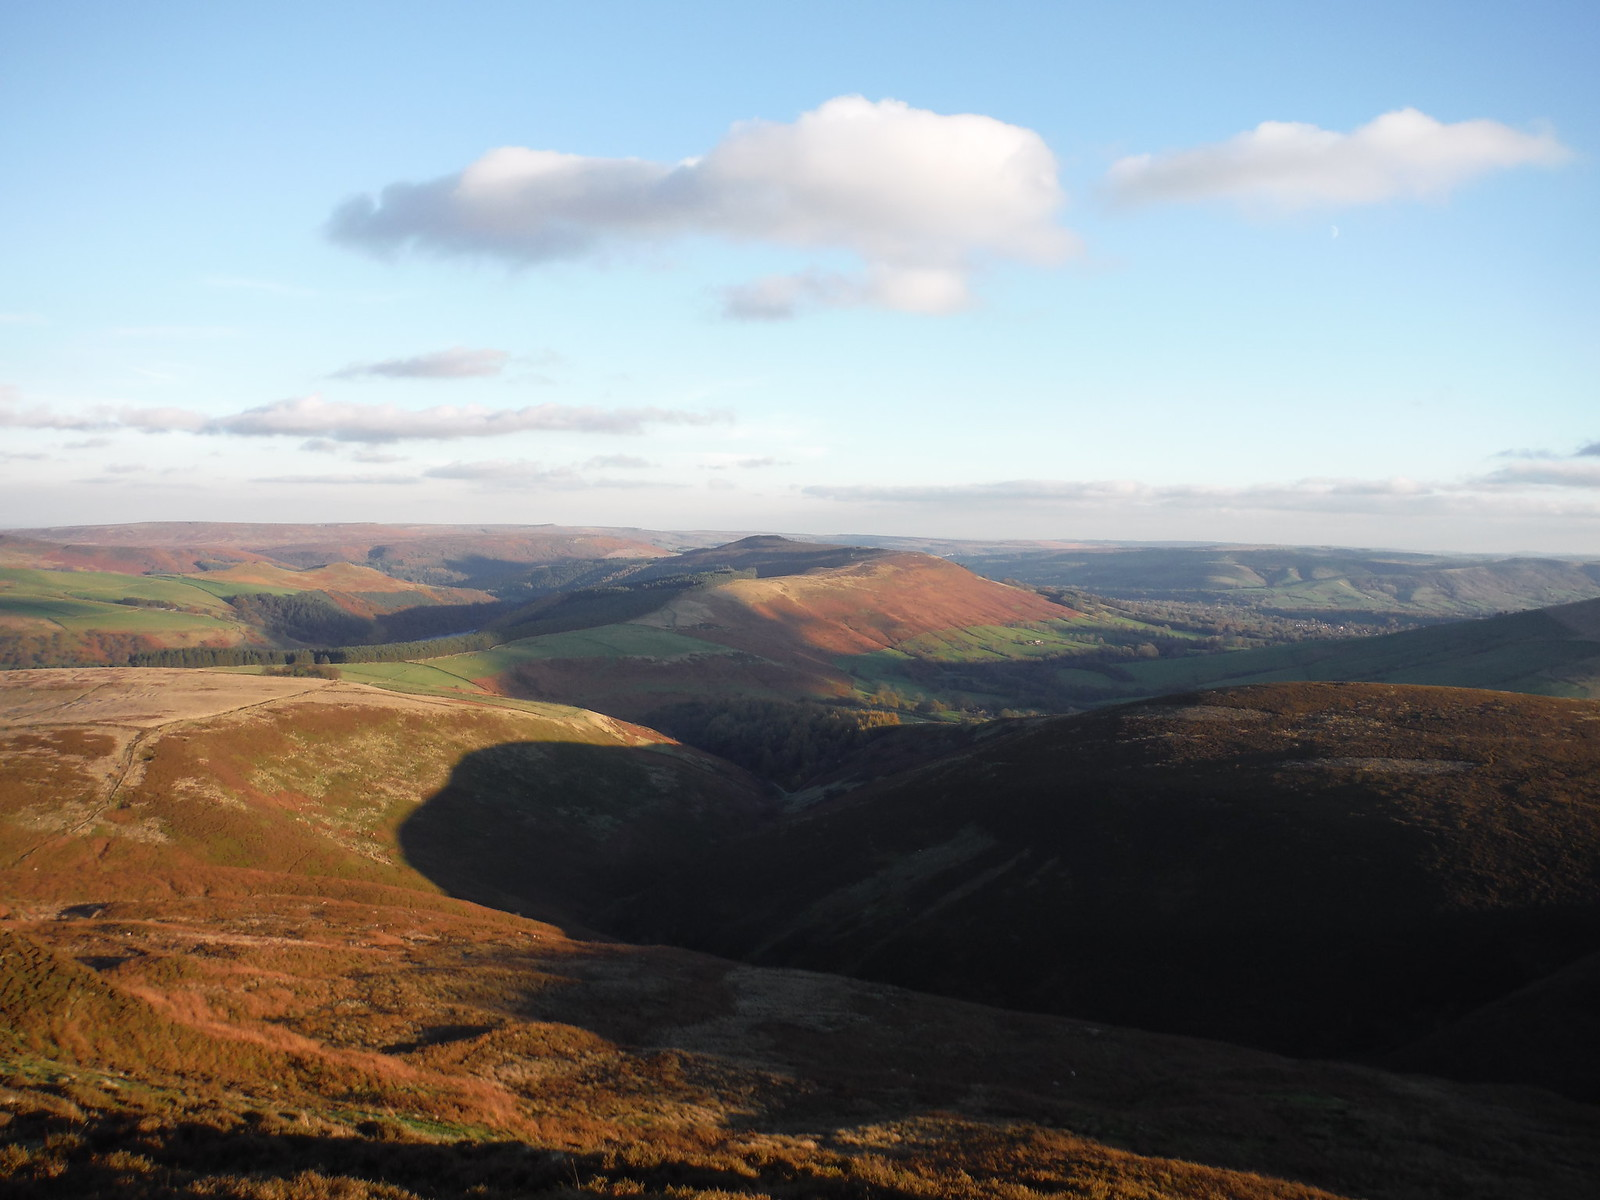 Wooler Knoll and Win Hill, Nether Moor